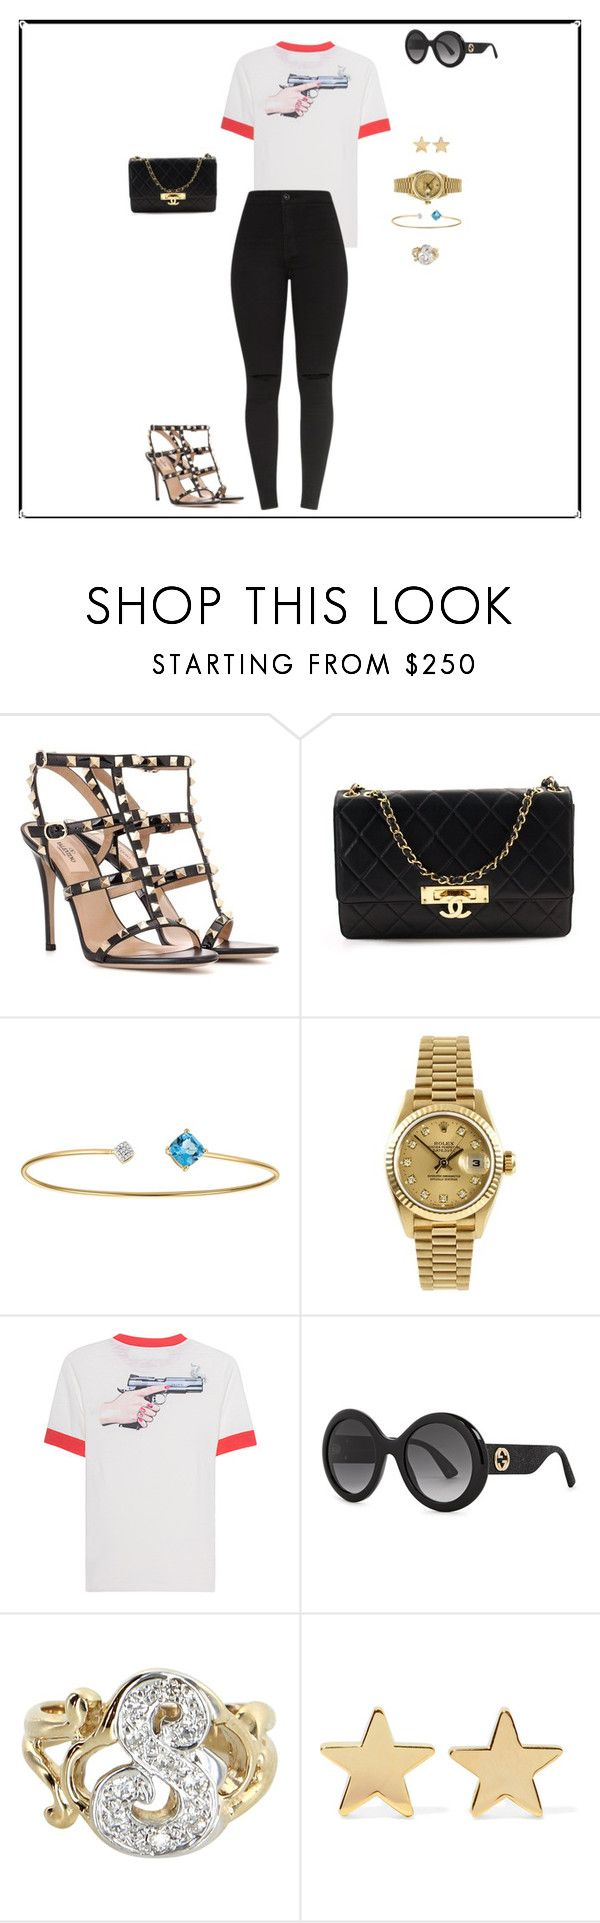 """""""Untitled #54"""" by sb187 ❤ liked on Polyvore featuring Valentino, Chanel, Rolex, Off-White, Gucci, Vintage and Jennifer Meyer Jewelry"""